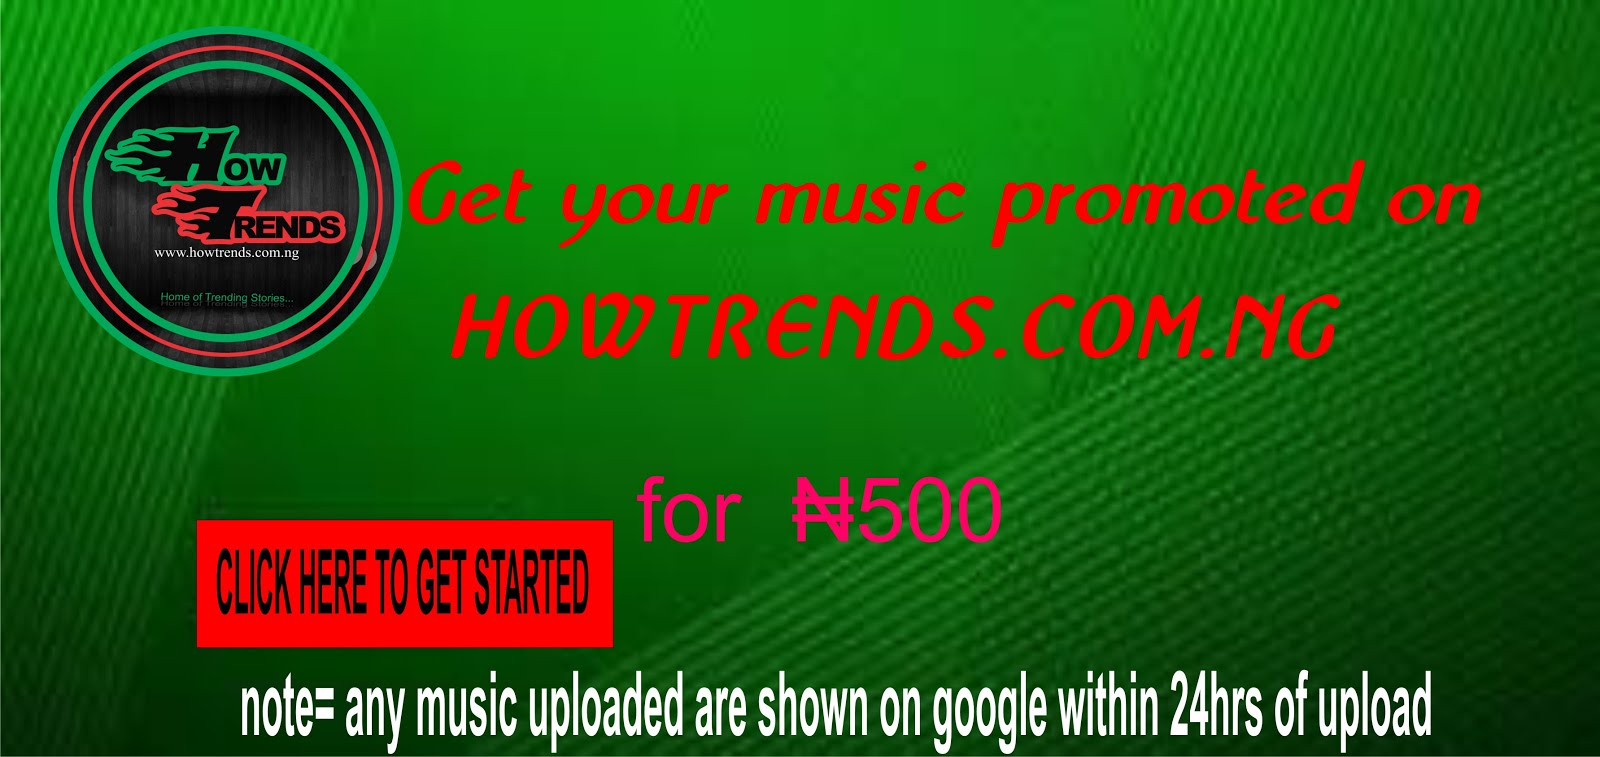 Promote your music on howtrends for as low as 500 naira